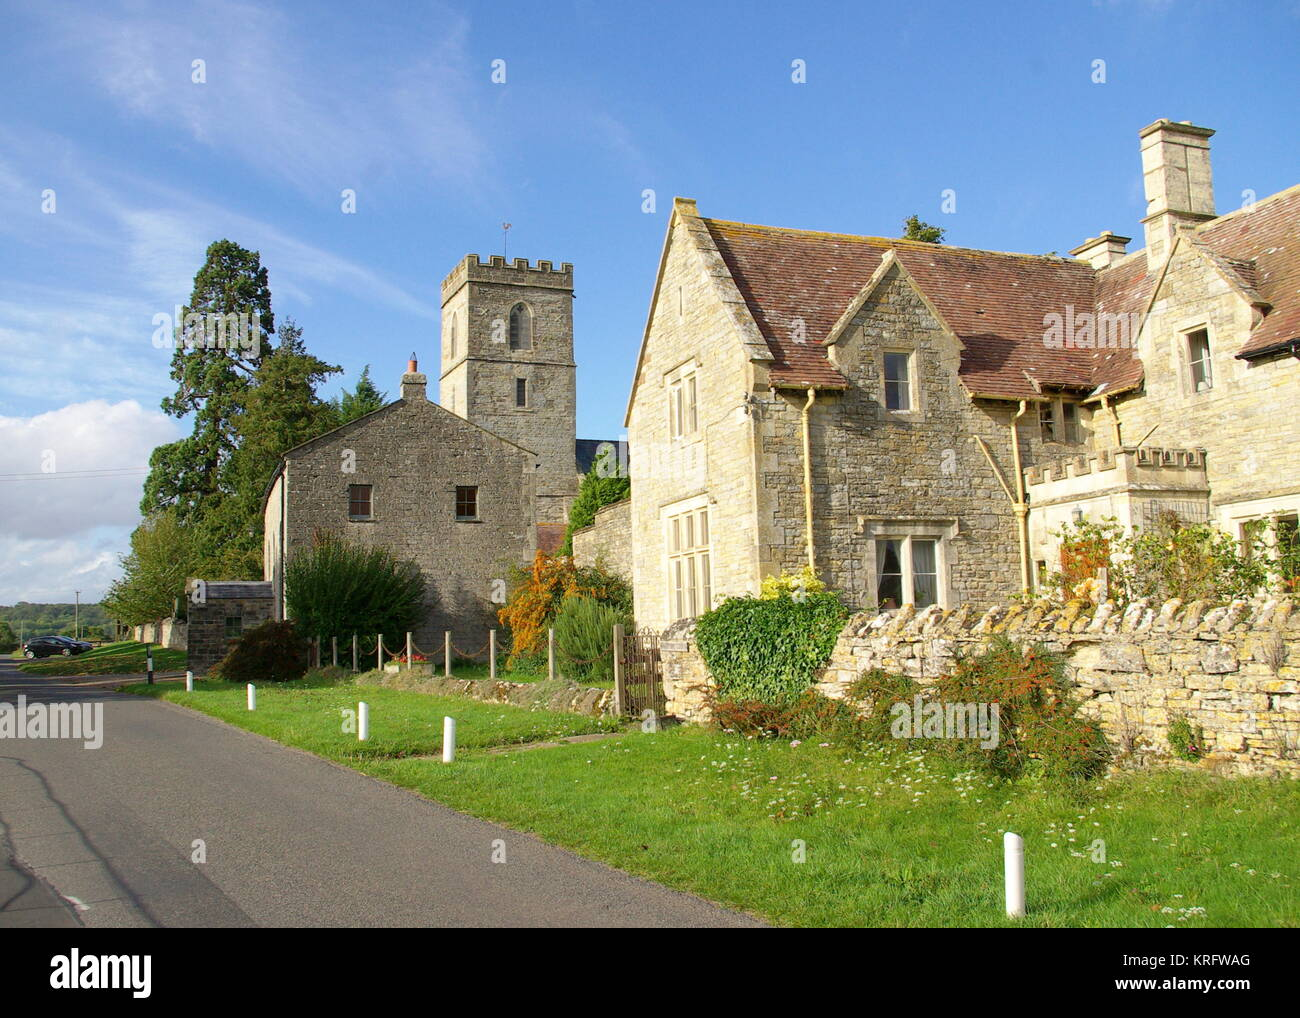 Group of historic buildings in Hartpury, Gloucestershire.  The tower in the middle distance belongs to St Mary's - Stock Image